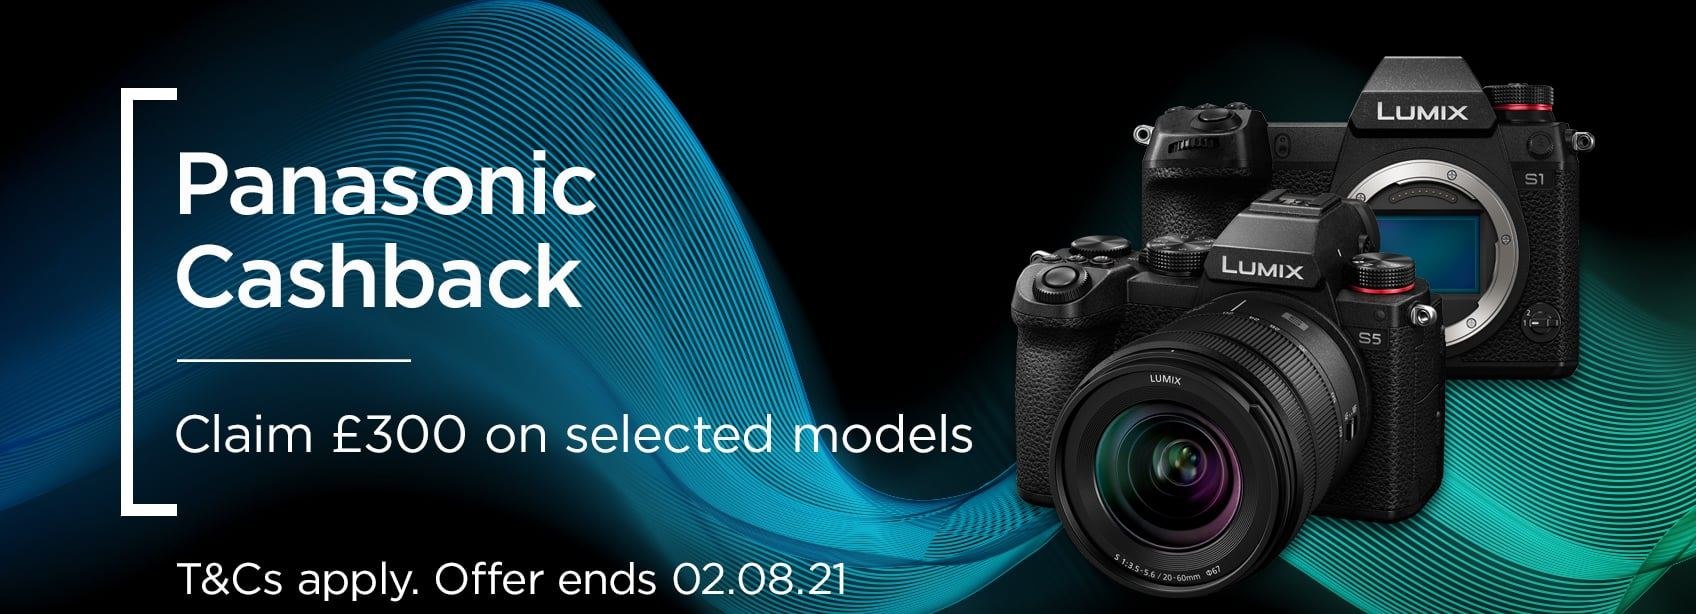 Panasonic Cashback - Claim £300 on selected models